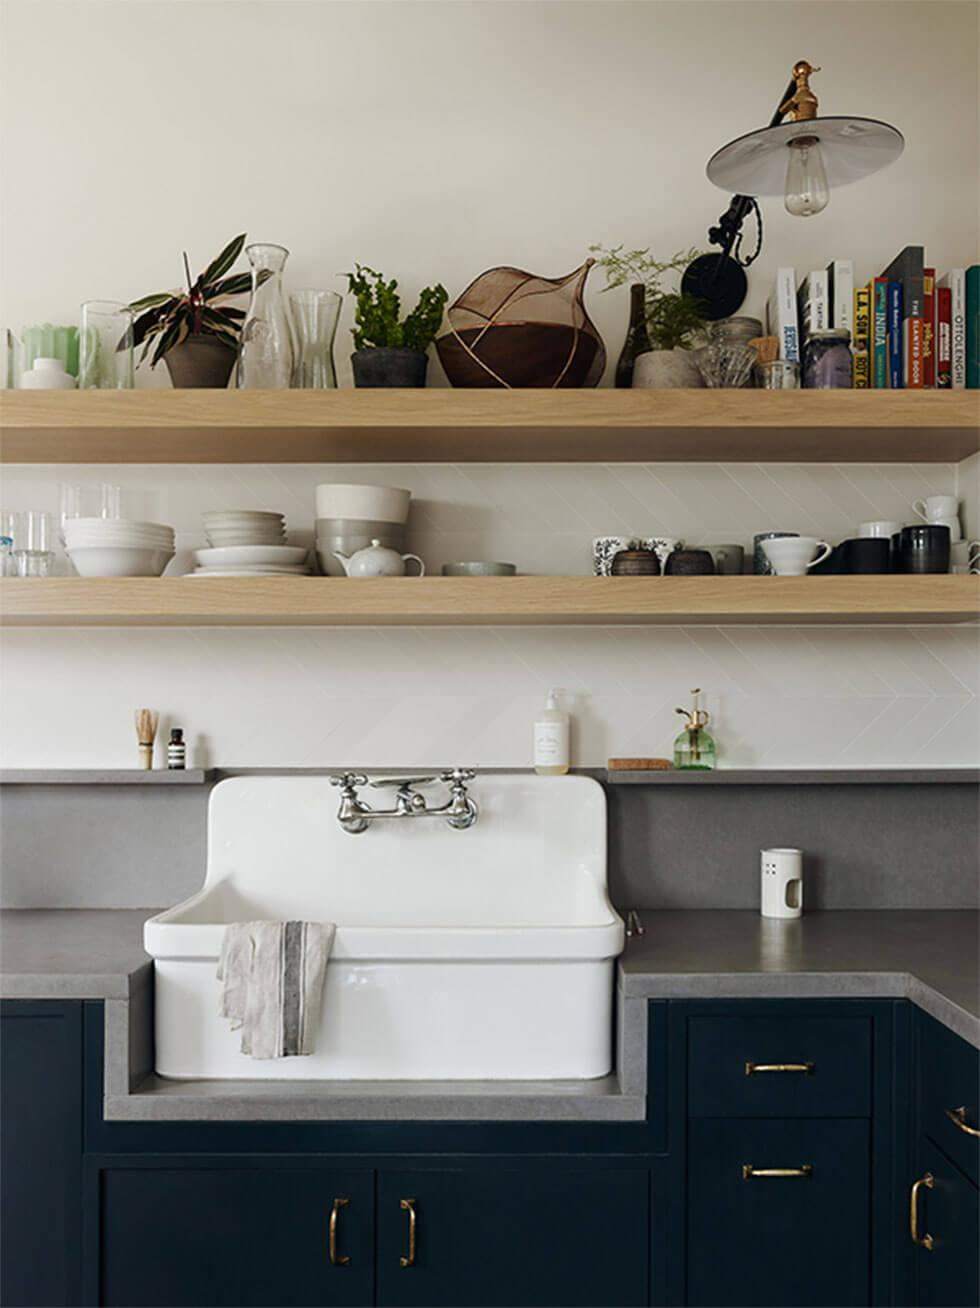 Minimal small kitchen with wooden shelves, white sink and dark grey counter tops and cabinets